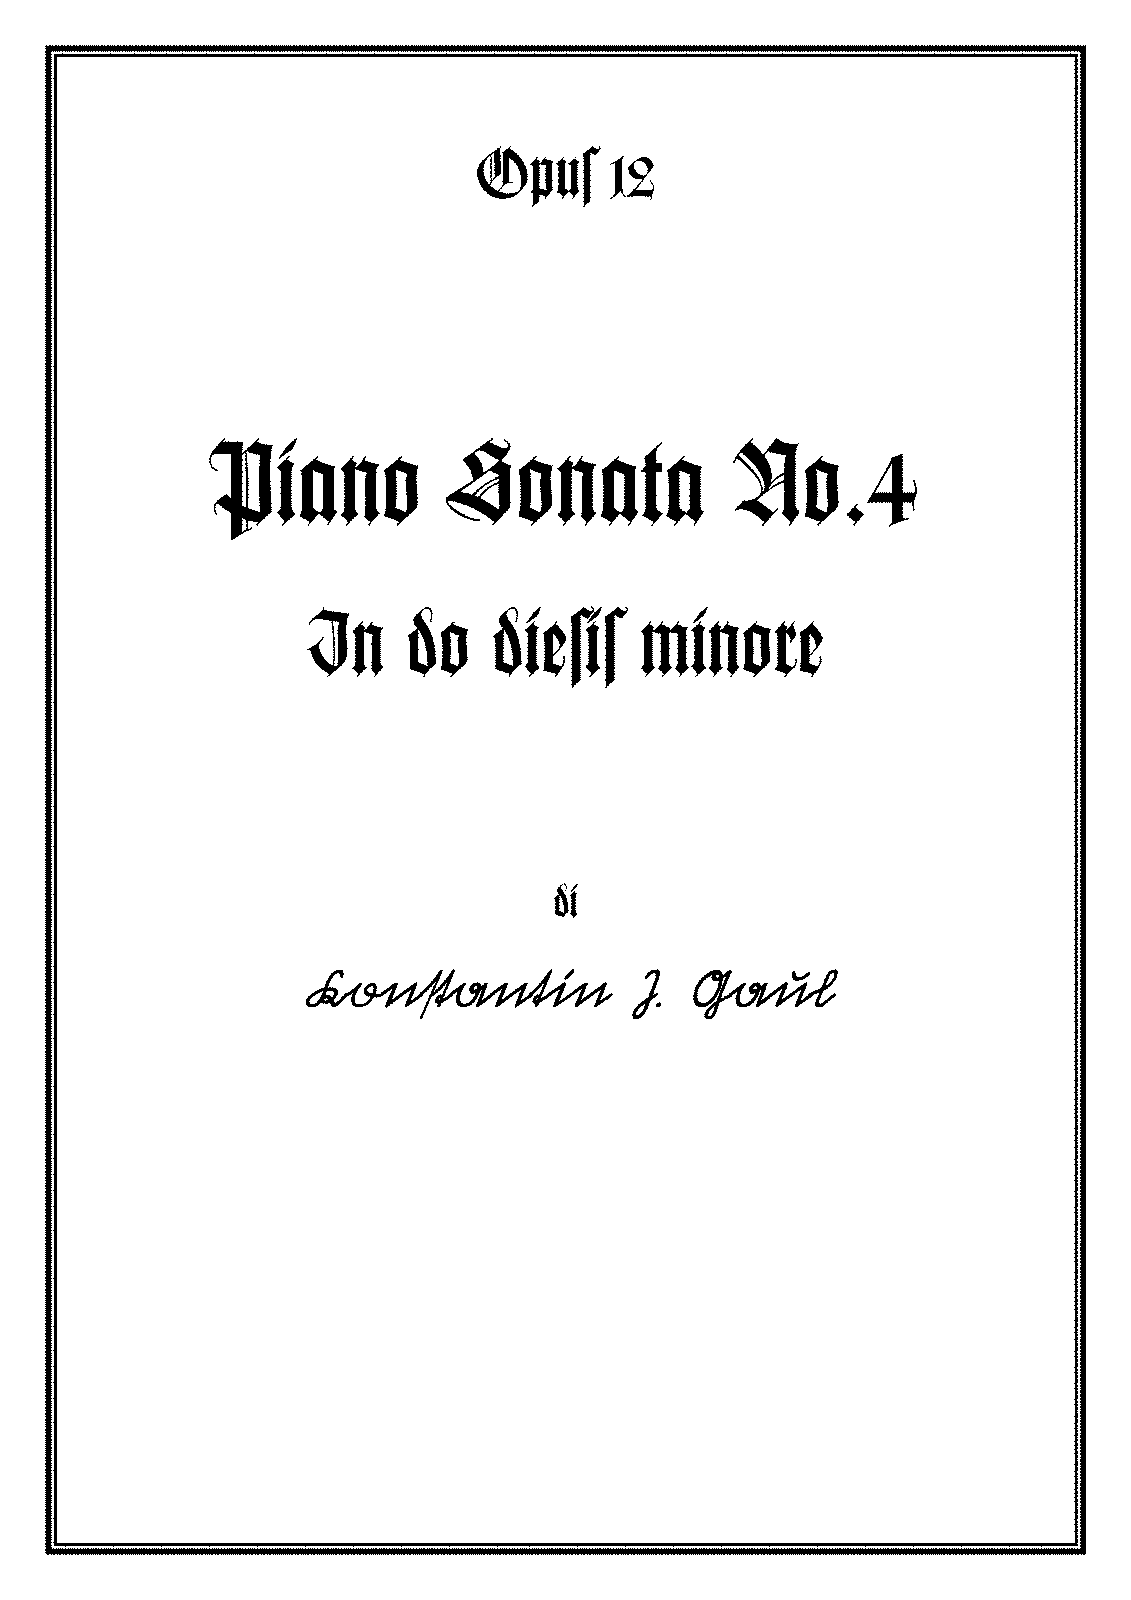 PMLP298684-Piano Sonata No.4 in do diesis minore.pdf